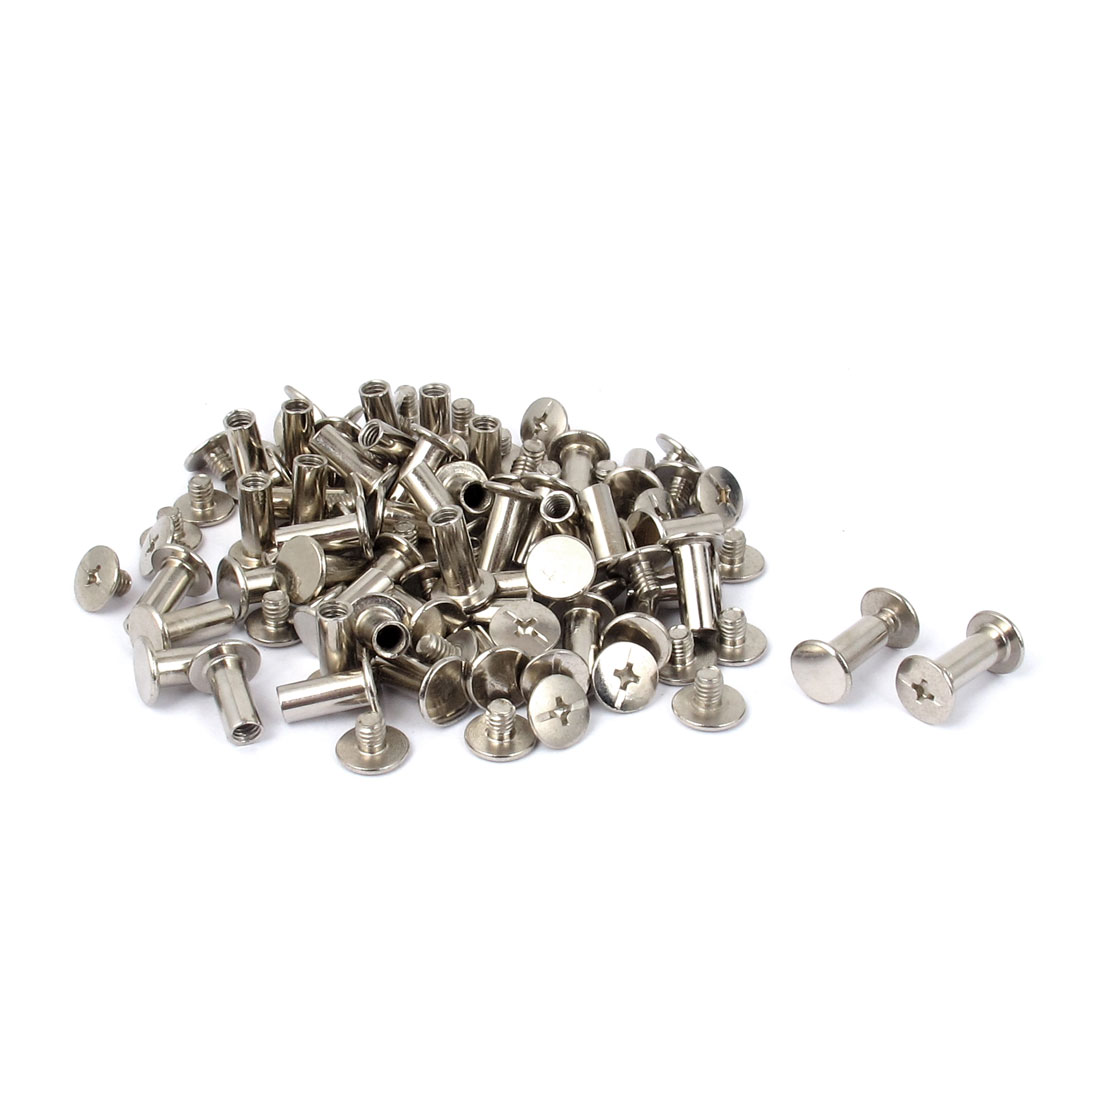 Scrapbooking Album Nickel Plated Binding Screws Posts Docking Screw Rivet 5x12mm 50pcs